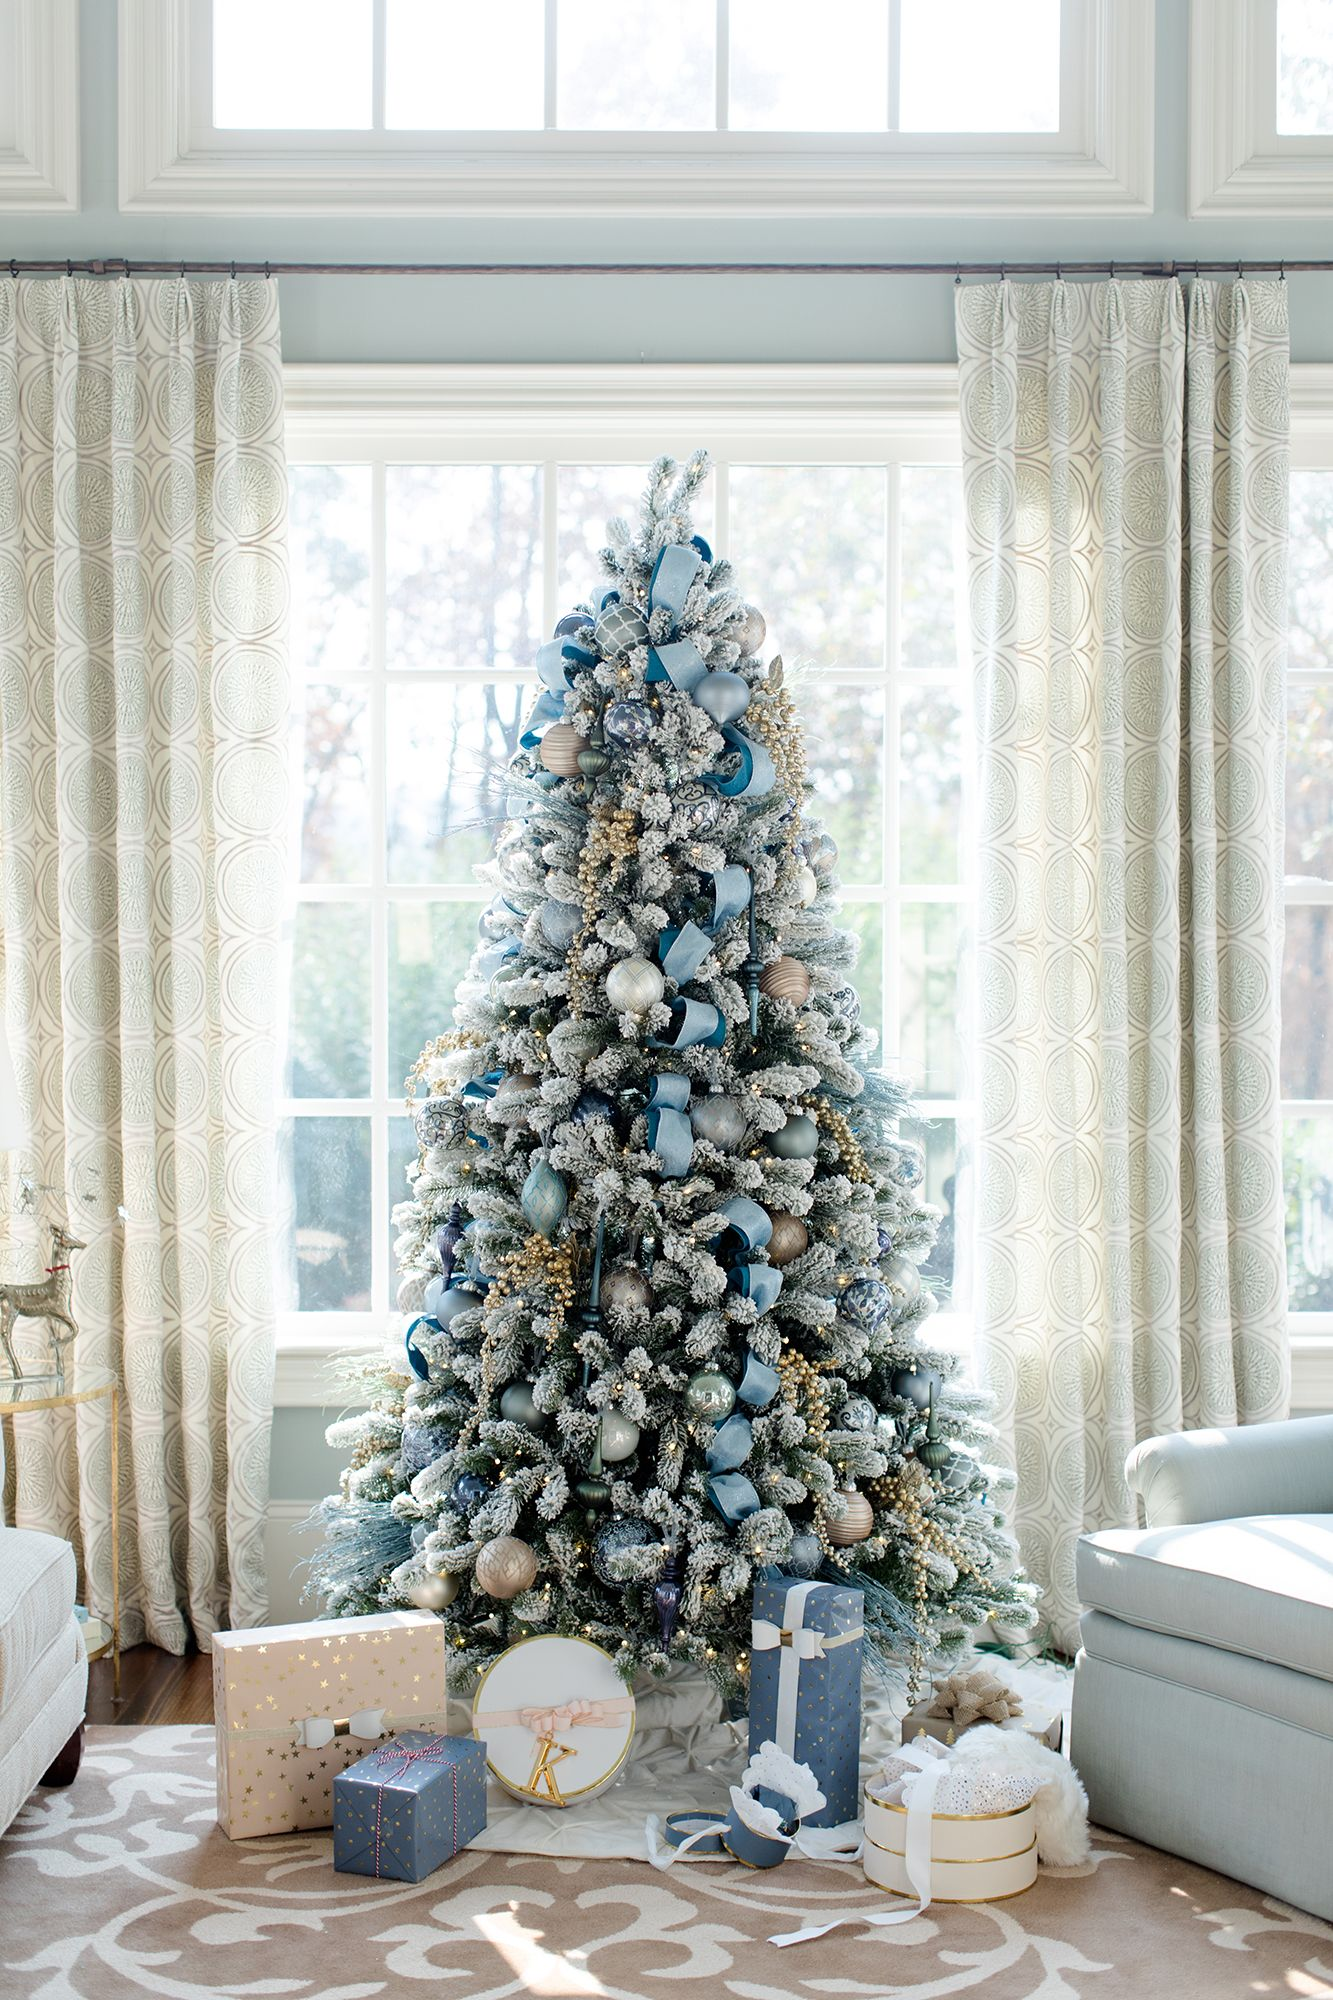 stunning christmas tree ideas 2018 best christmas tree decorating tips - Order Of Decorating A Christmas Tree